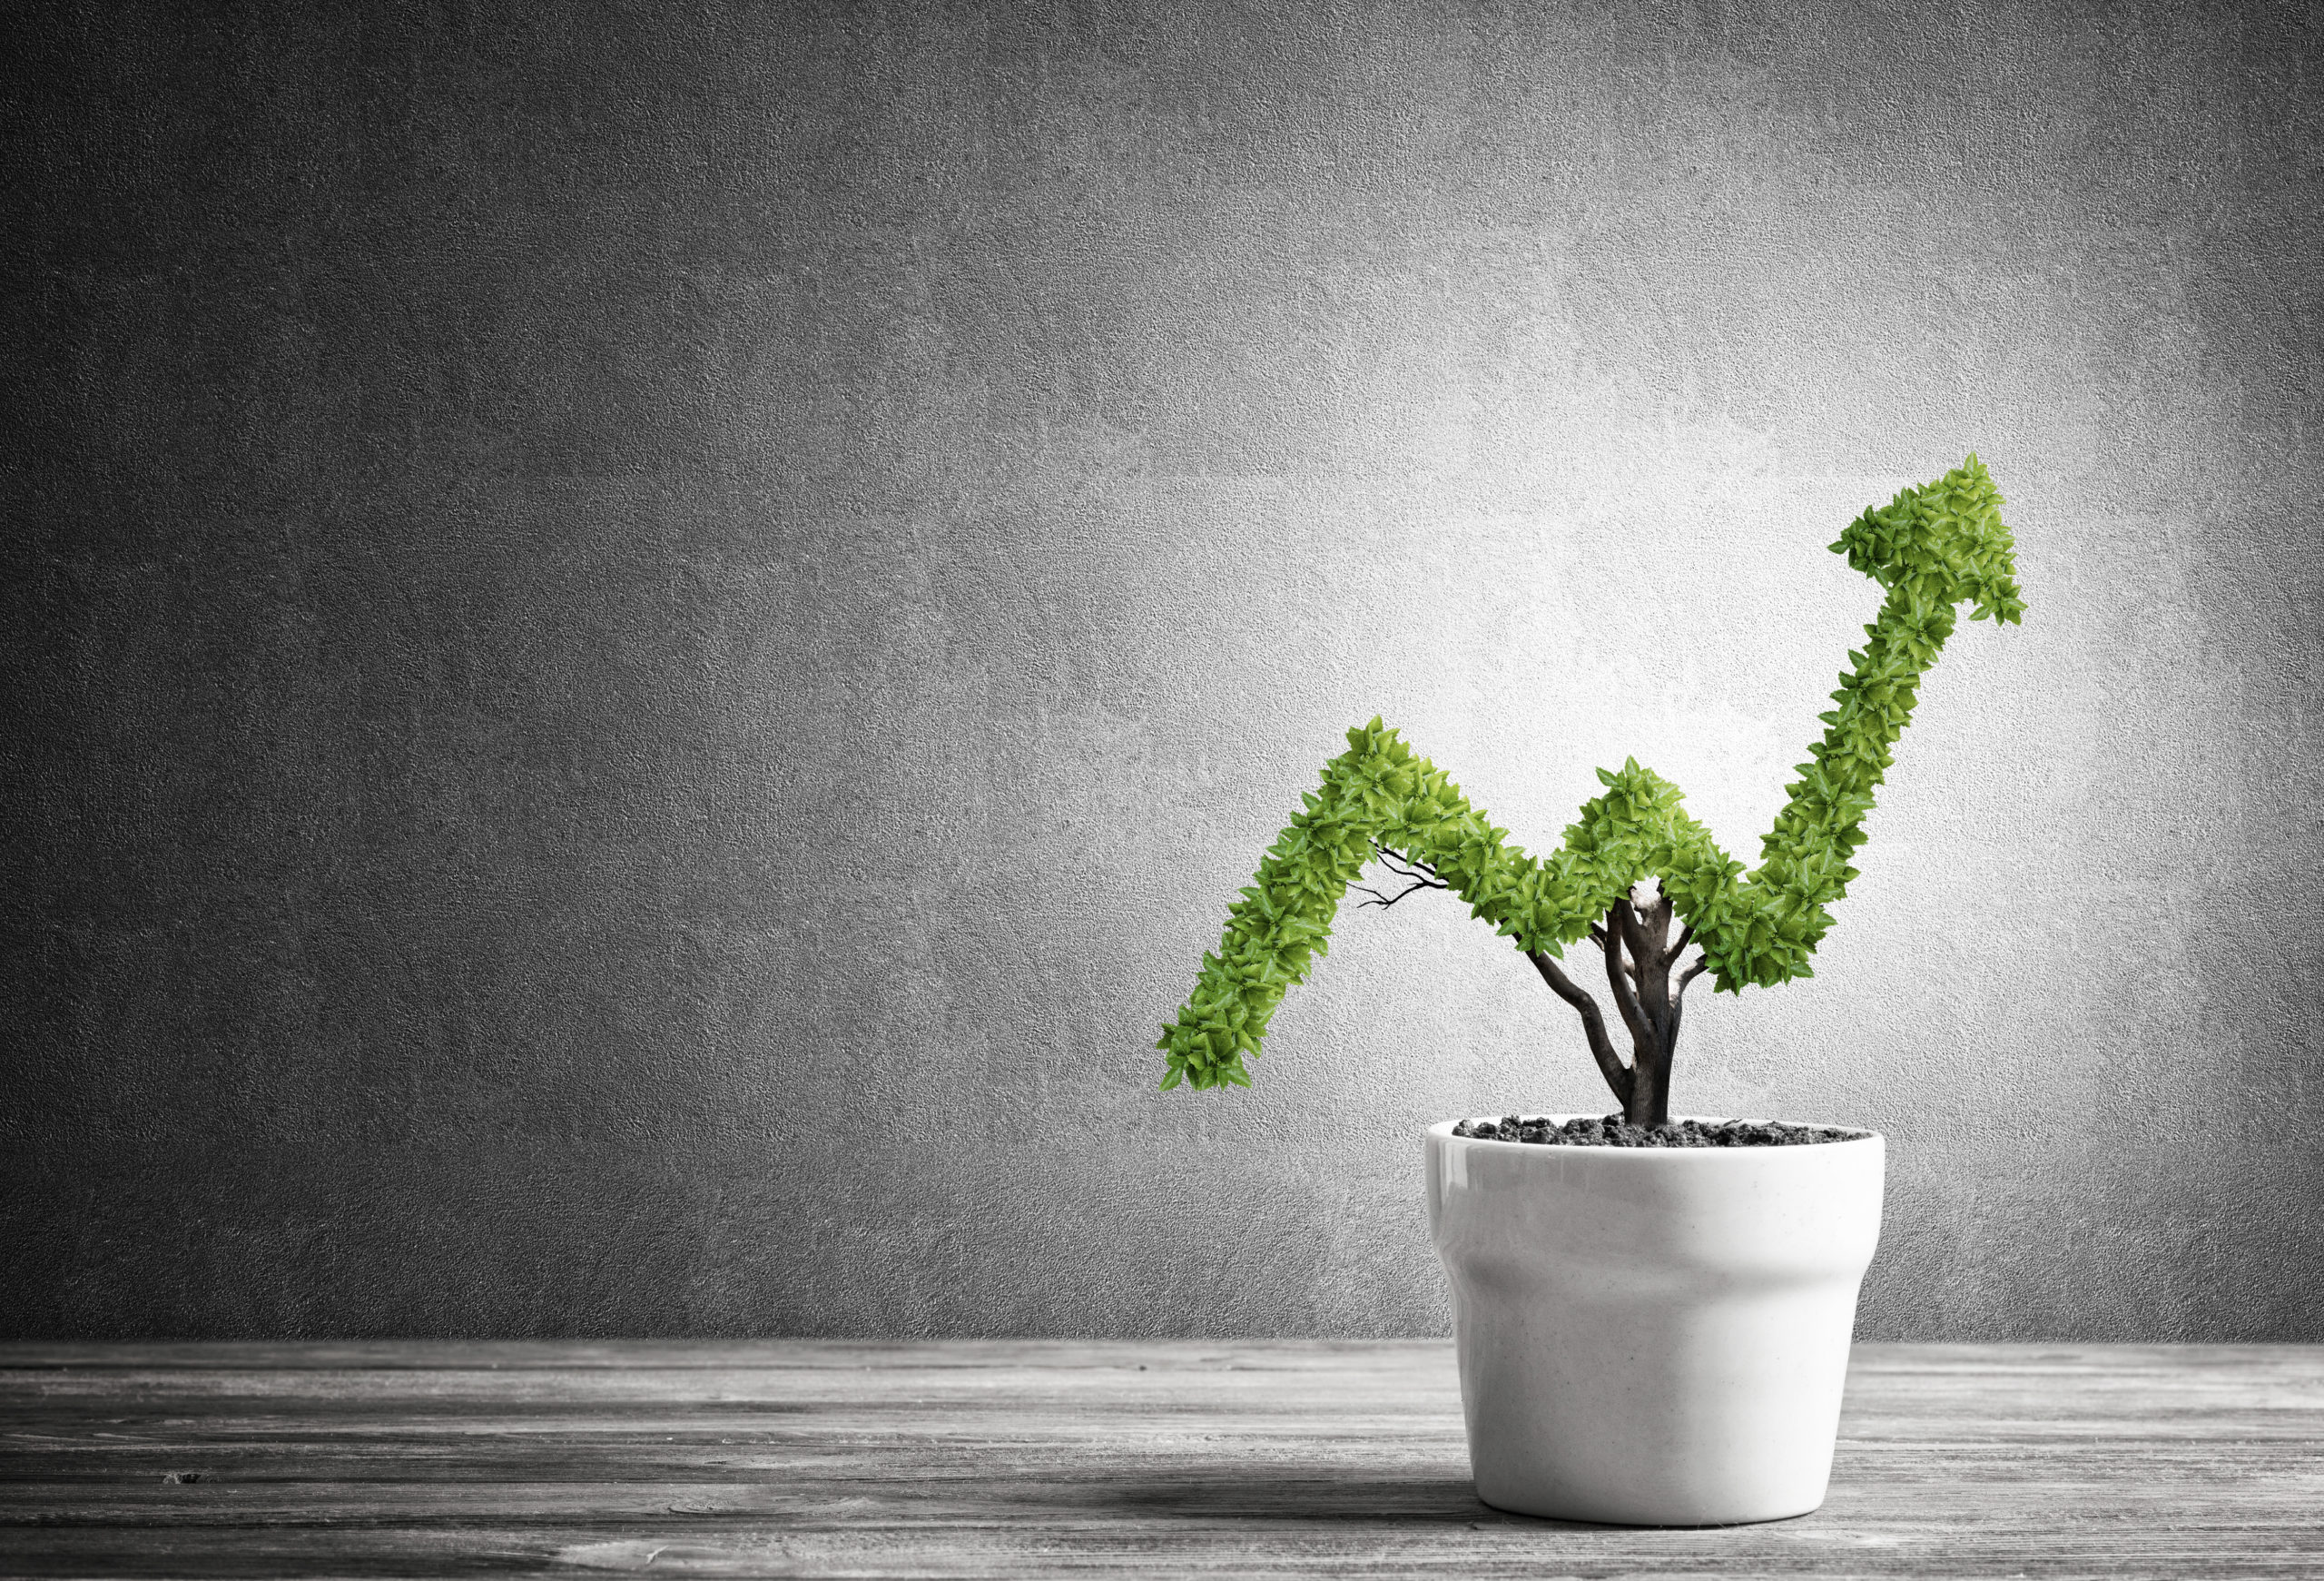 Plant that is growing in an upward arrow shape showing growth in profits.